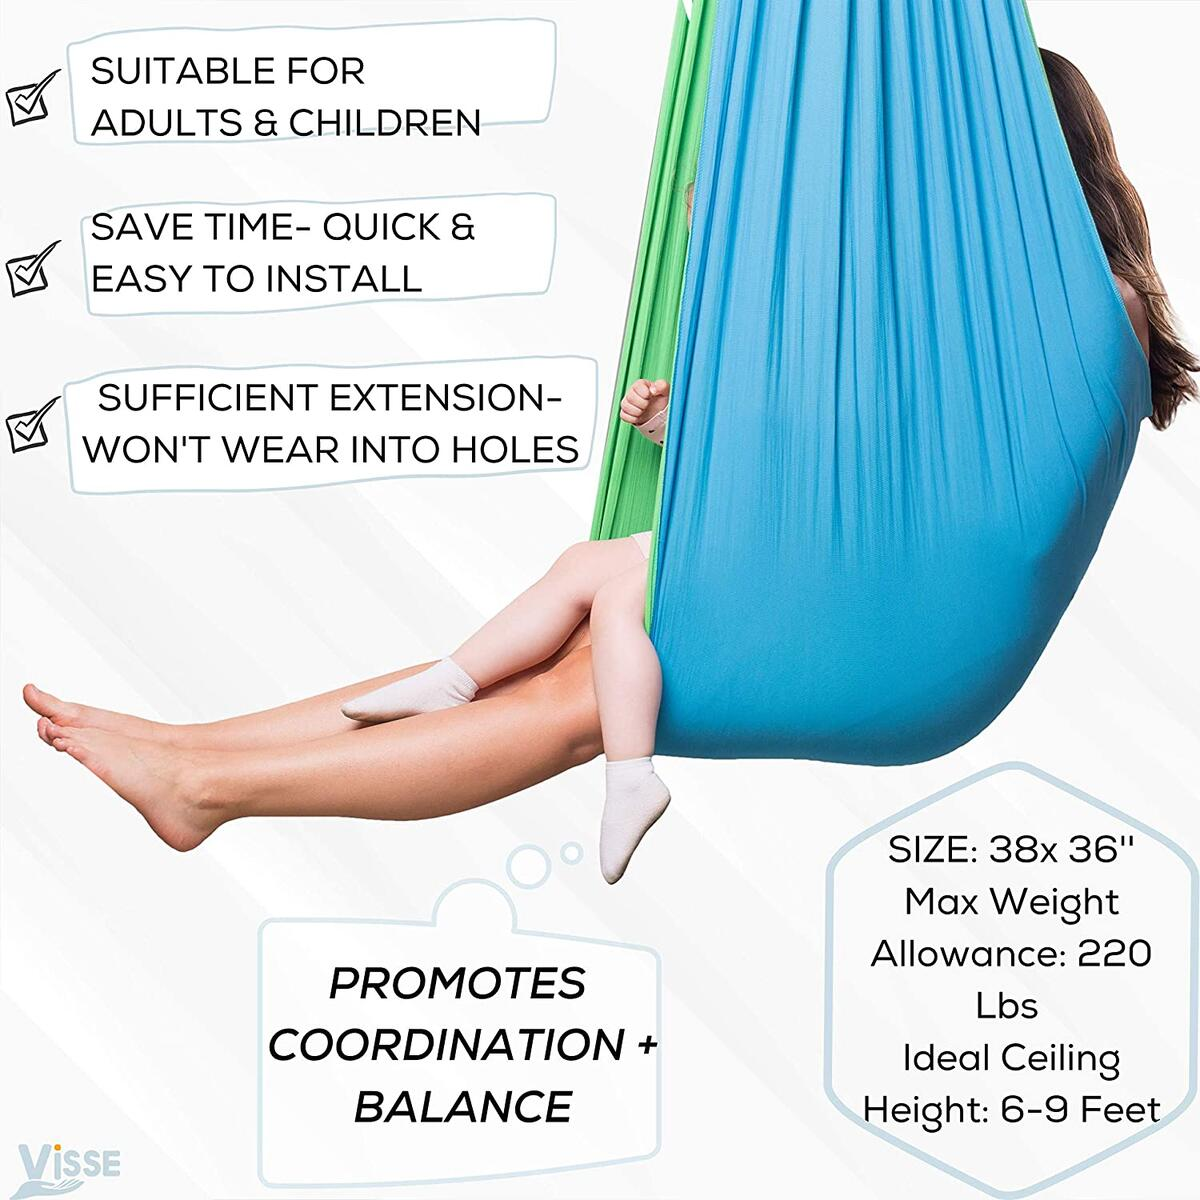 Indoor Sensory Swing for Kids & Adults - Solid Therapy Swings, Swivel Hardware Included - Holds up to 220 LBS- Helps with Sensory Processing Disorder, Autism, ADHD